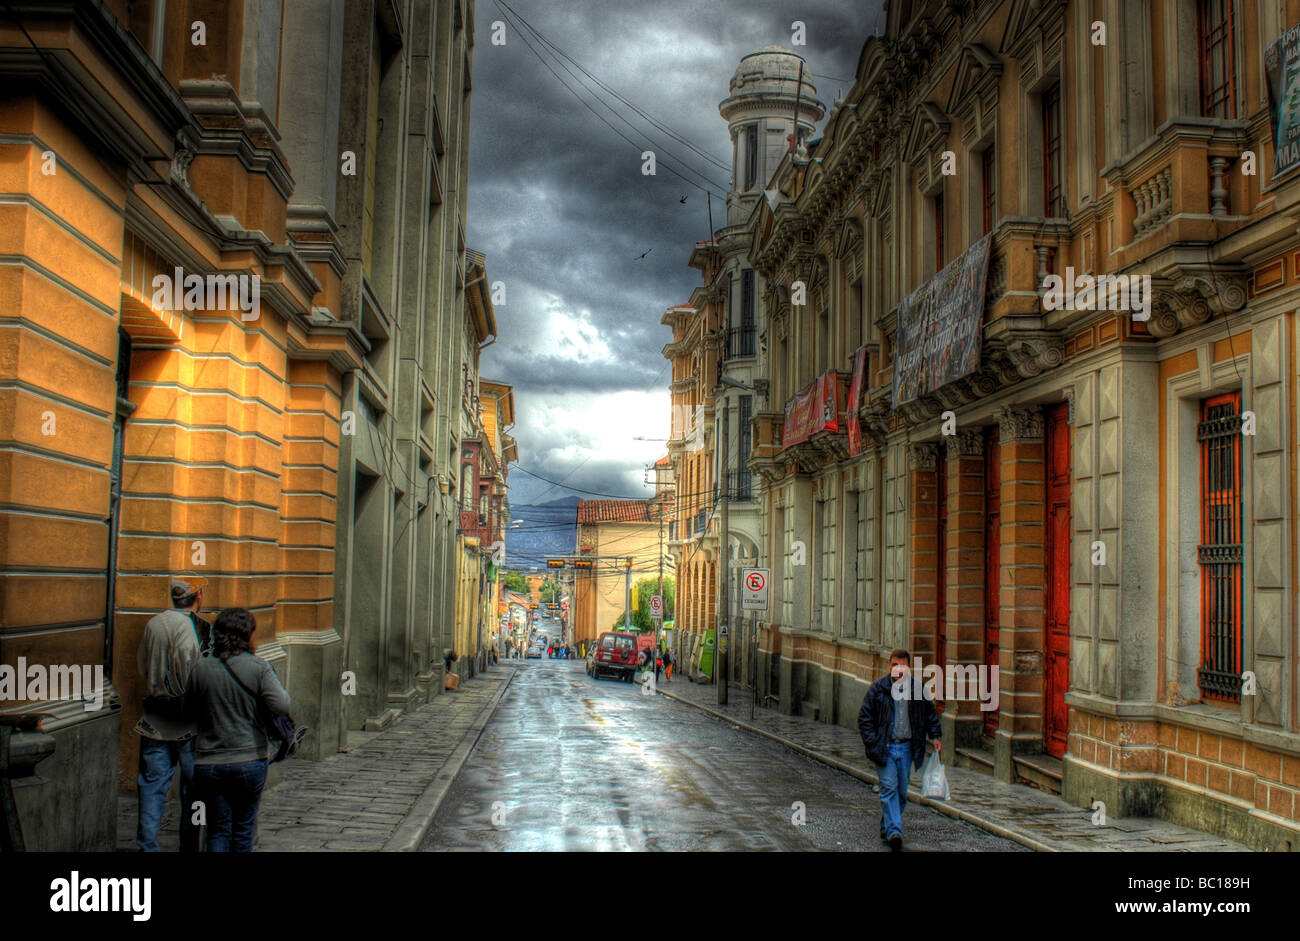 HDR Image of a rainy inner city, downtown scene in the city centre of La Paz, Bolivia - Stock Image